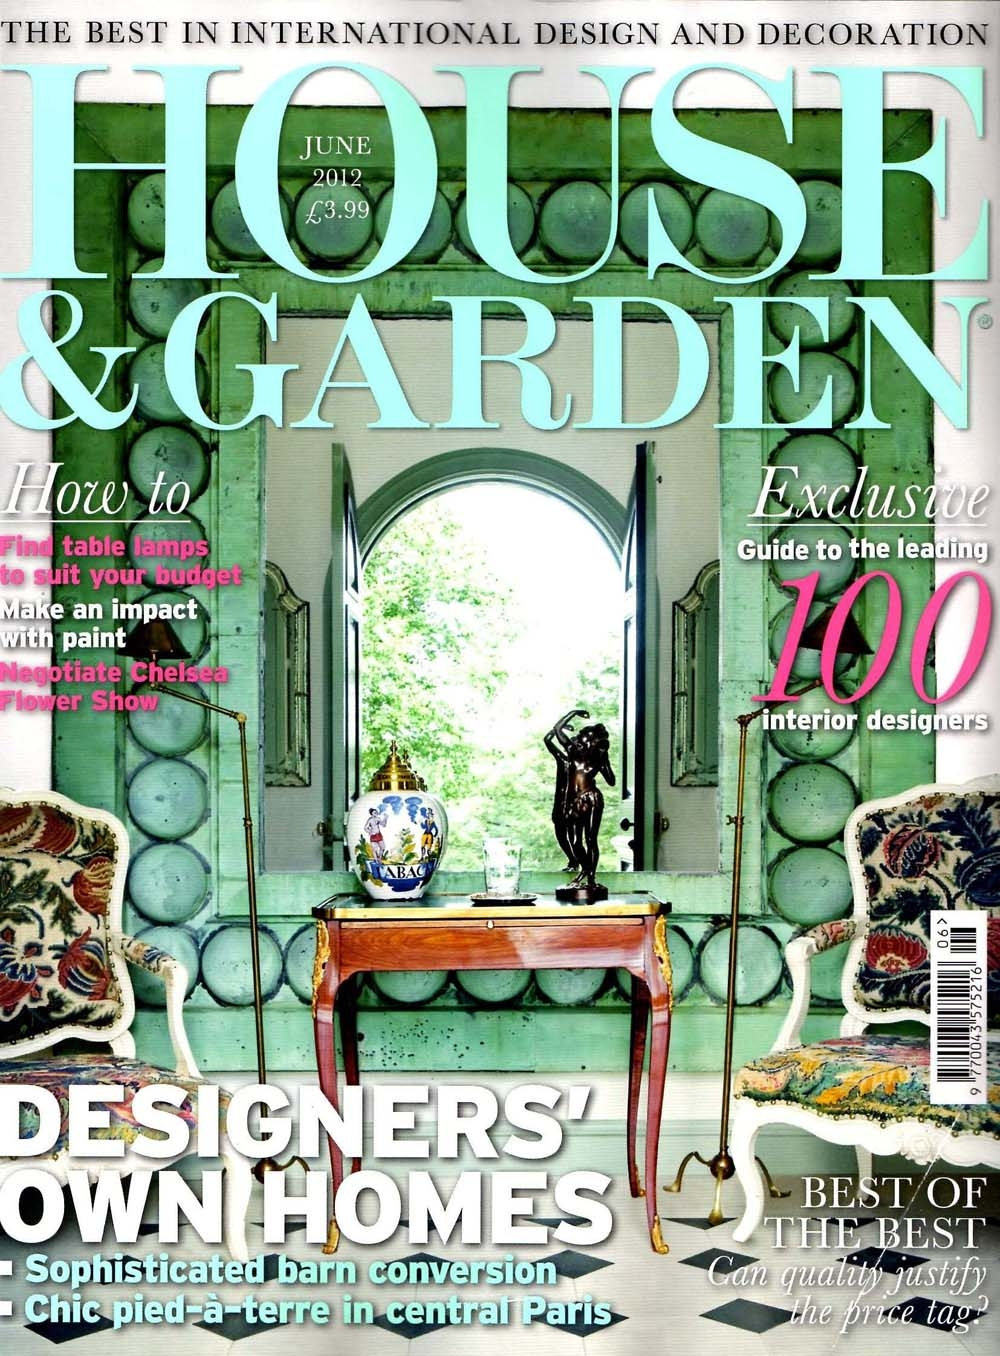 house and garden leading 100 interior designers carter